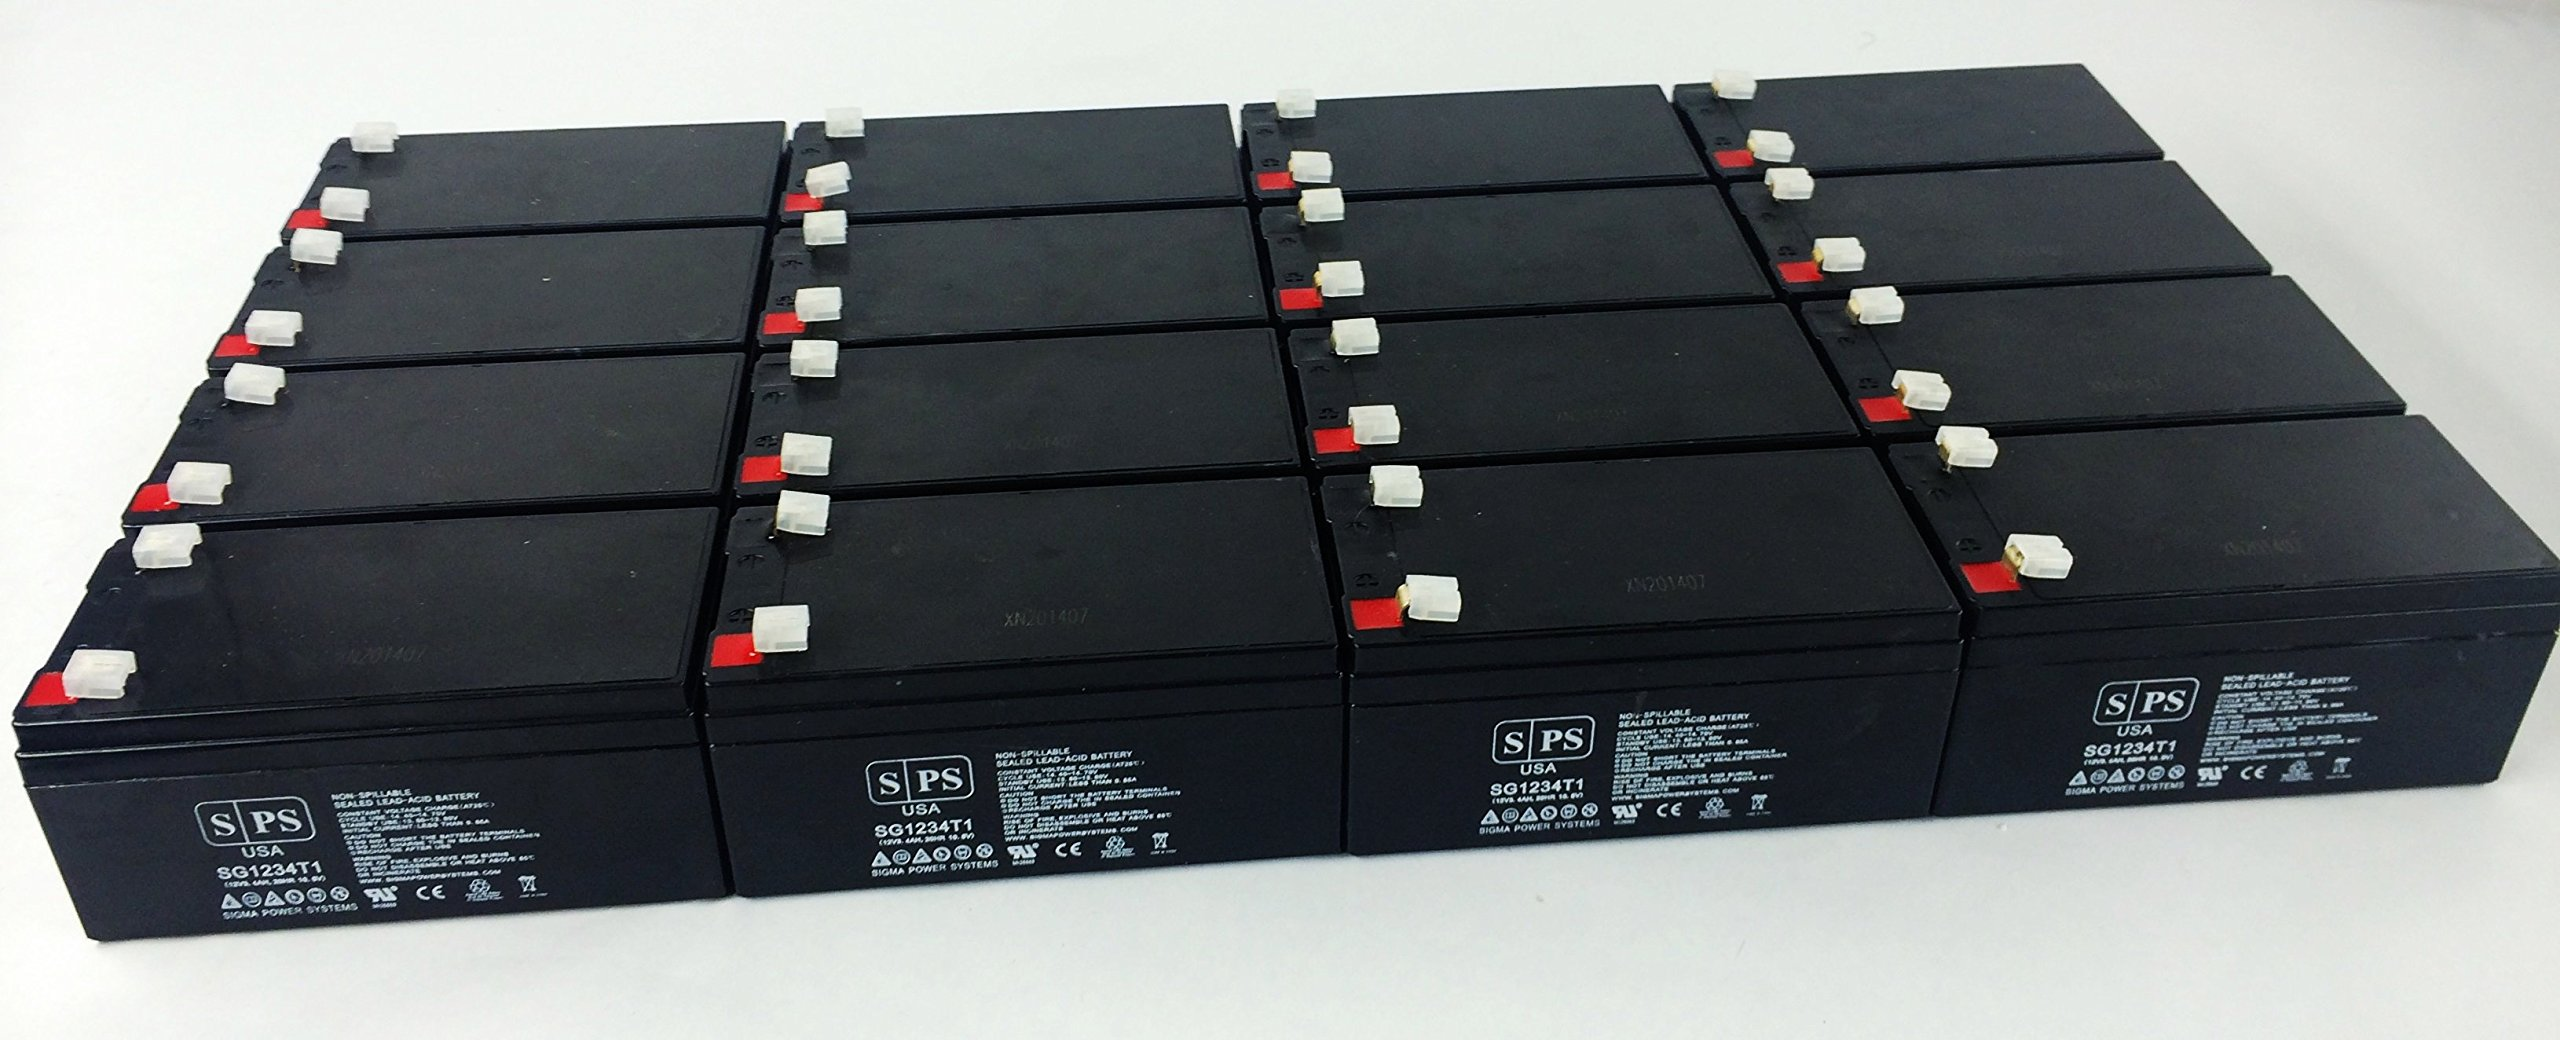 Replacement Battery for Spacelabs Medical MEDIA ANALYZER - SPS Brand ( 16 pack ) by SPS